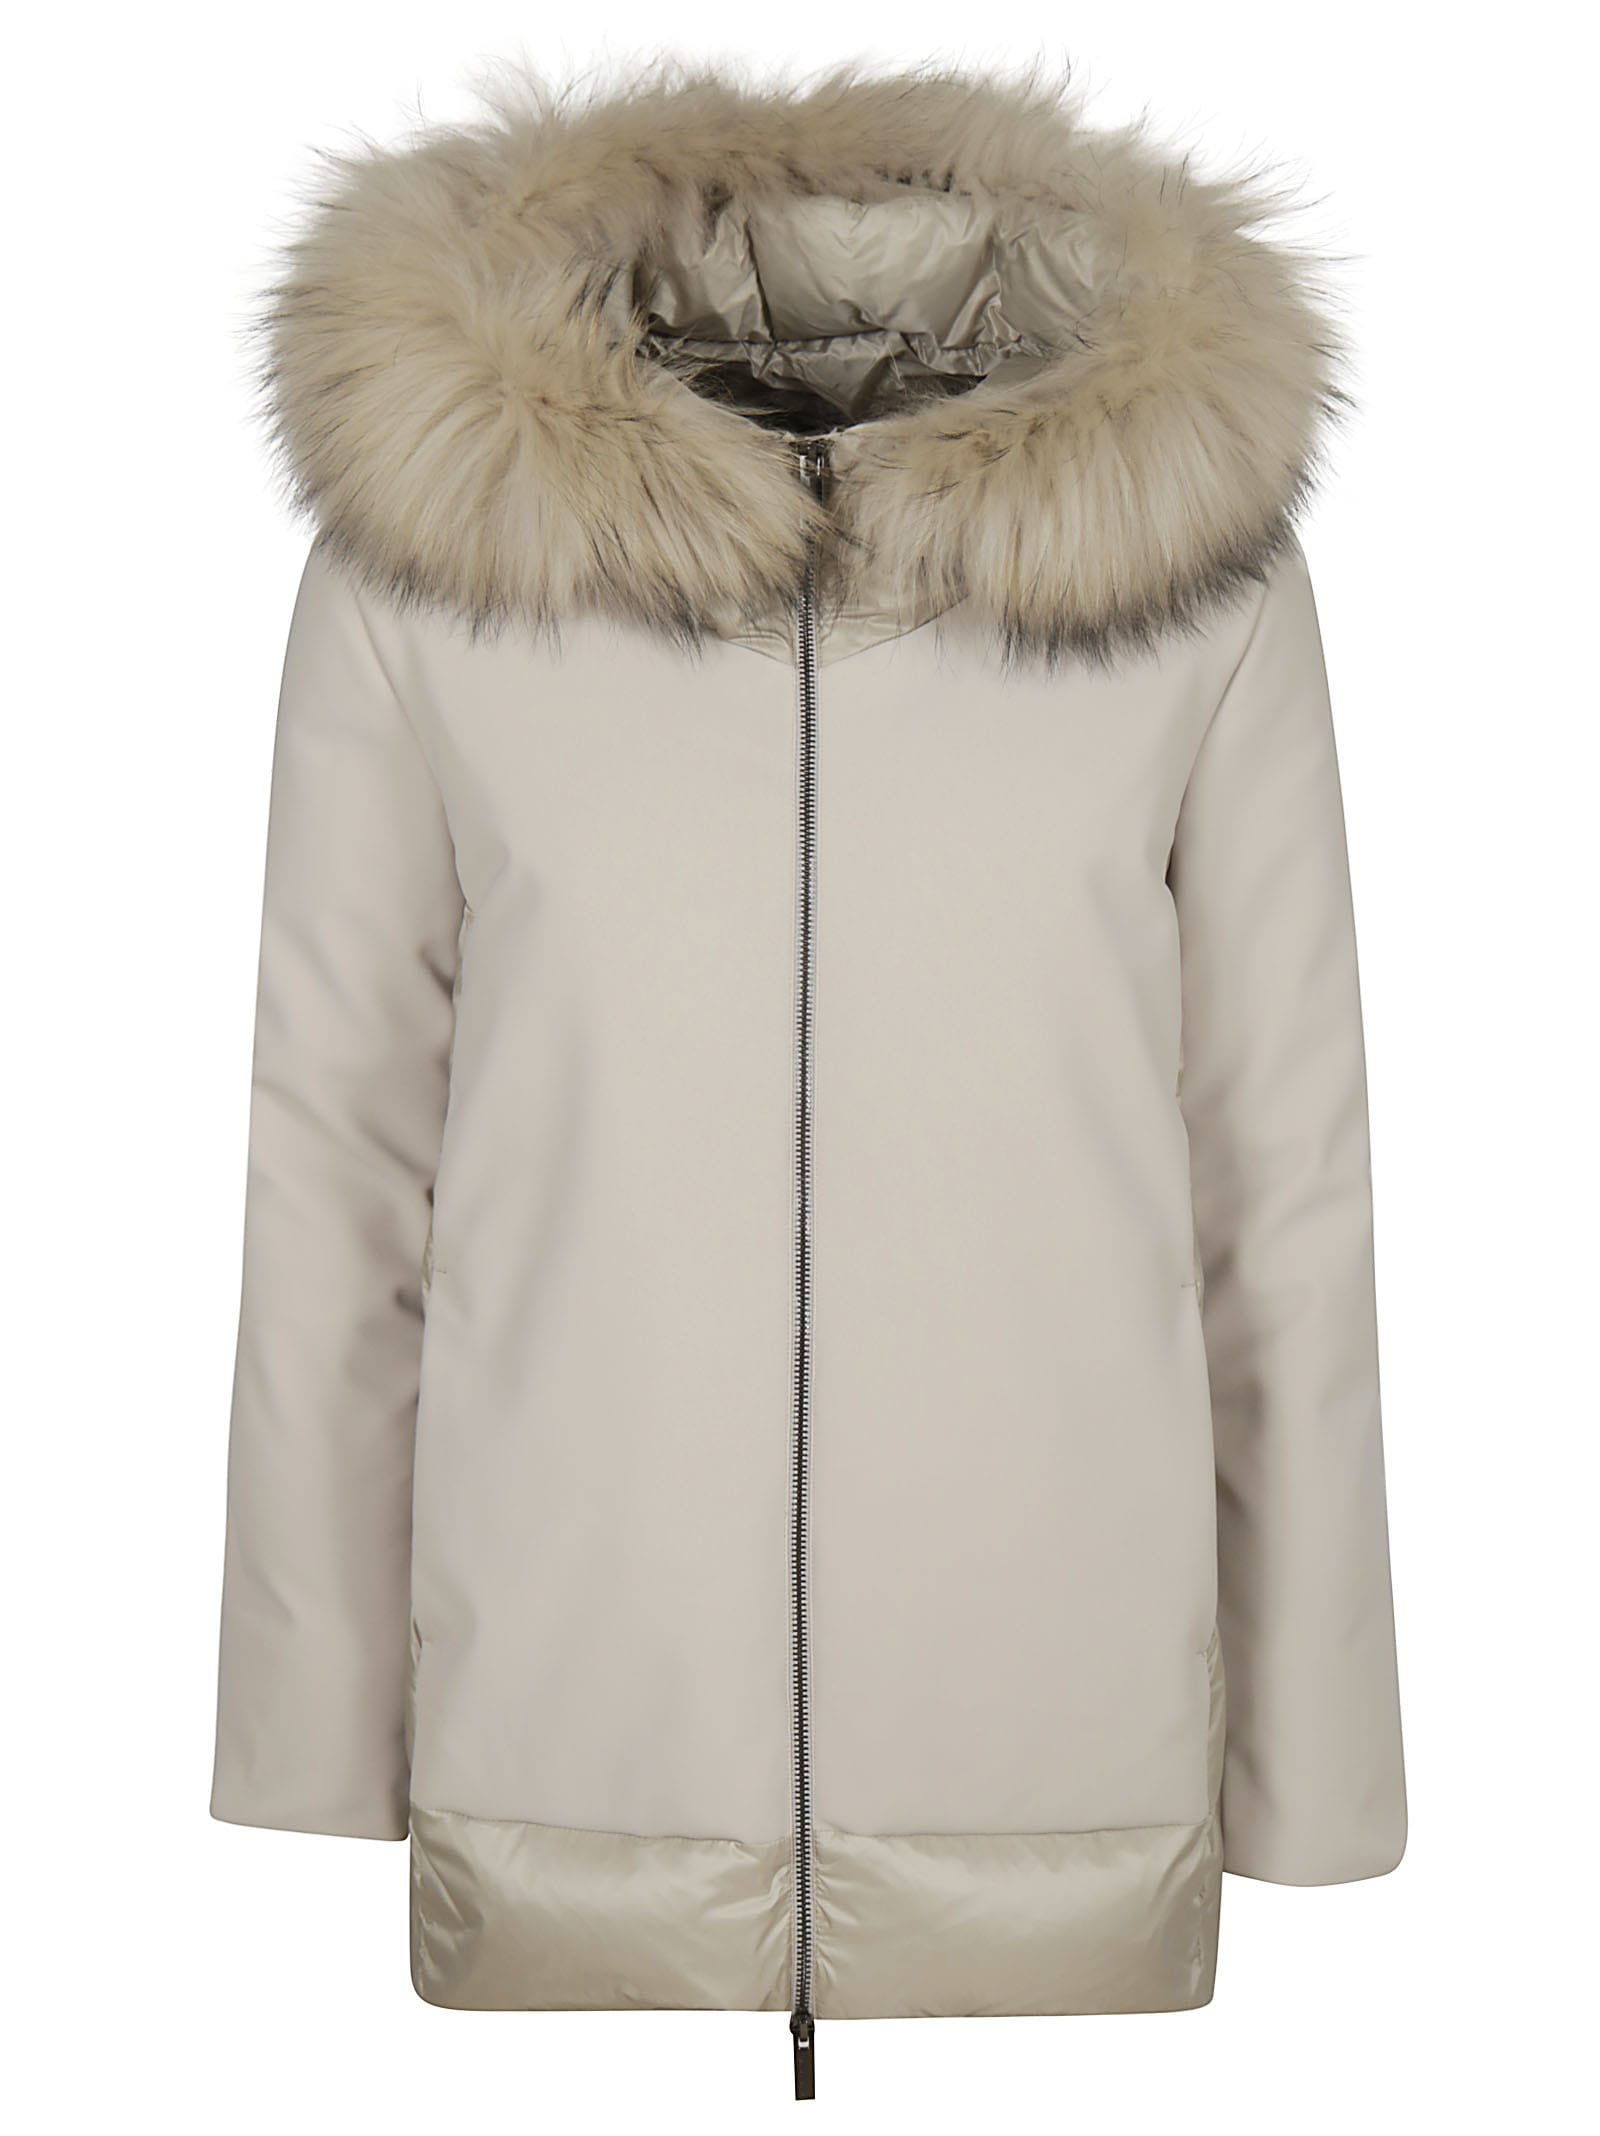 RRD - Roberto Ricci Design Winter Hybrid Feathered Hood Jacket